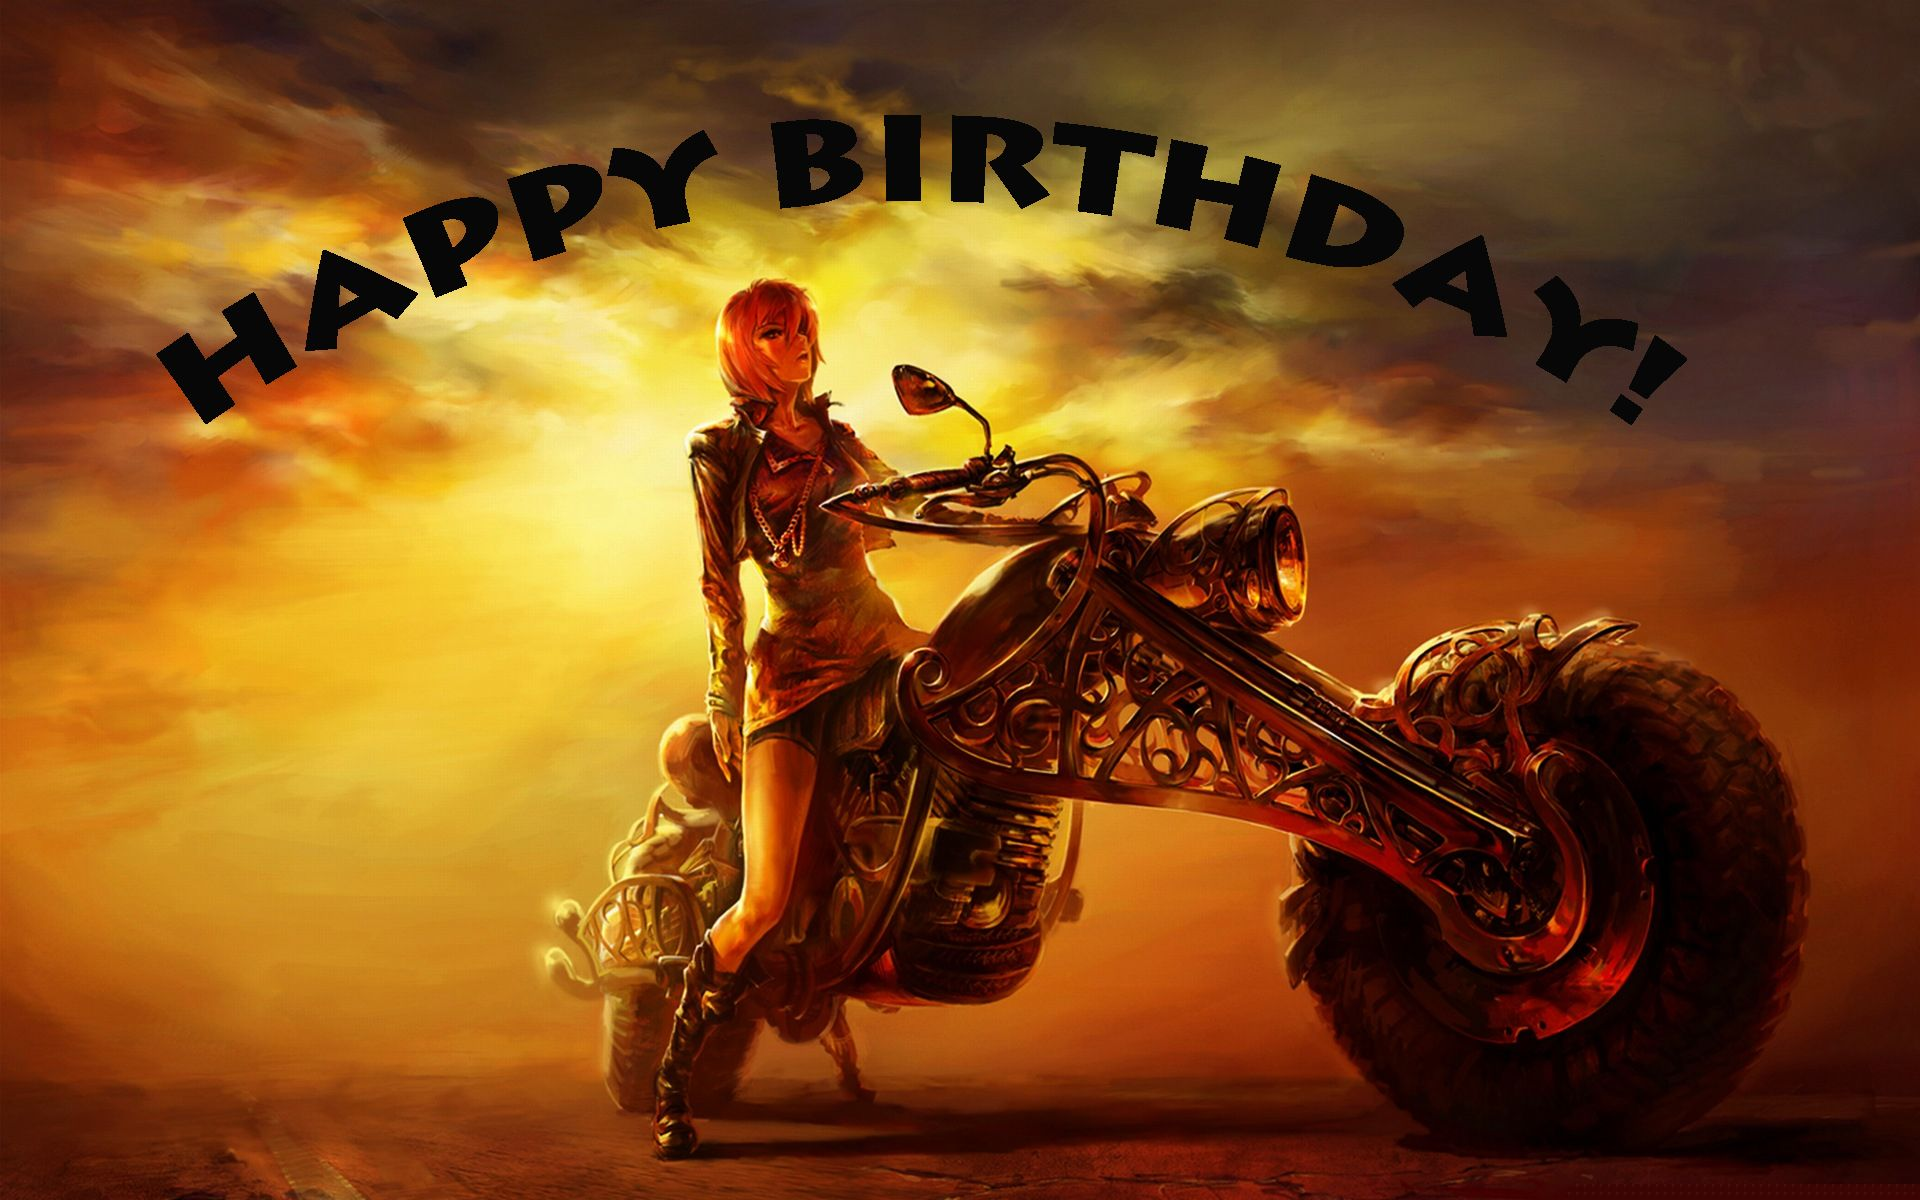 Happy Birthday Animated Wallpaper Happy Birthday Biker Chick Motorcycles Pinterest